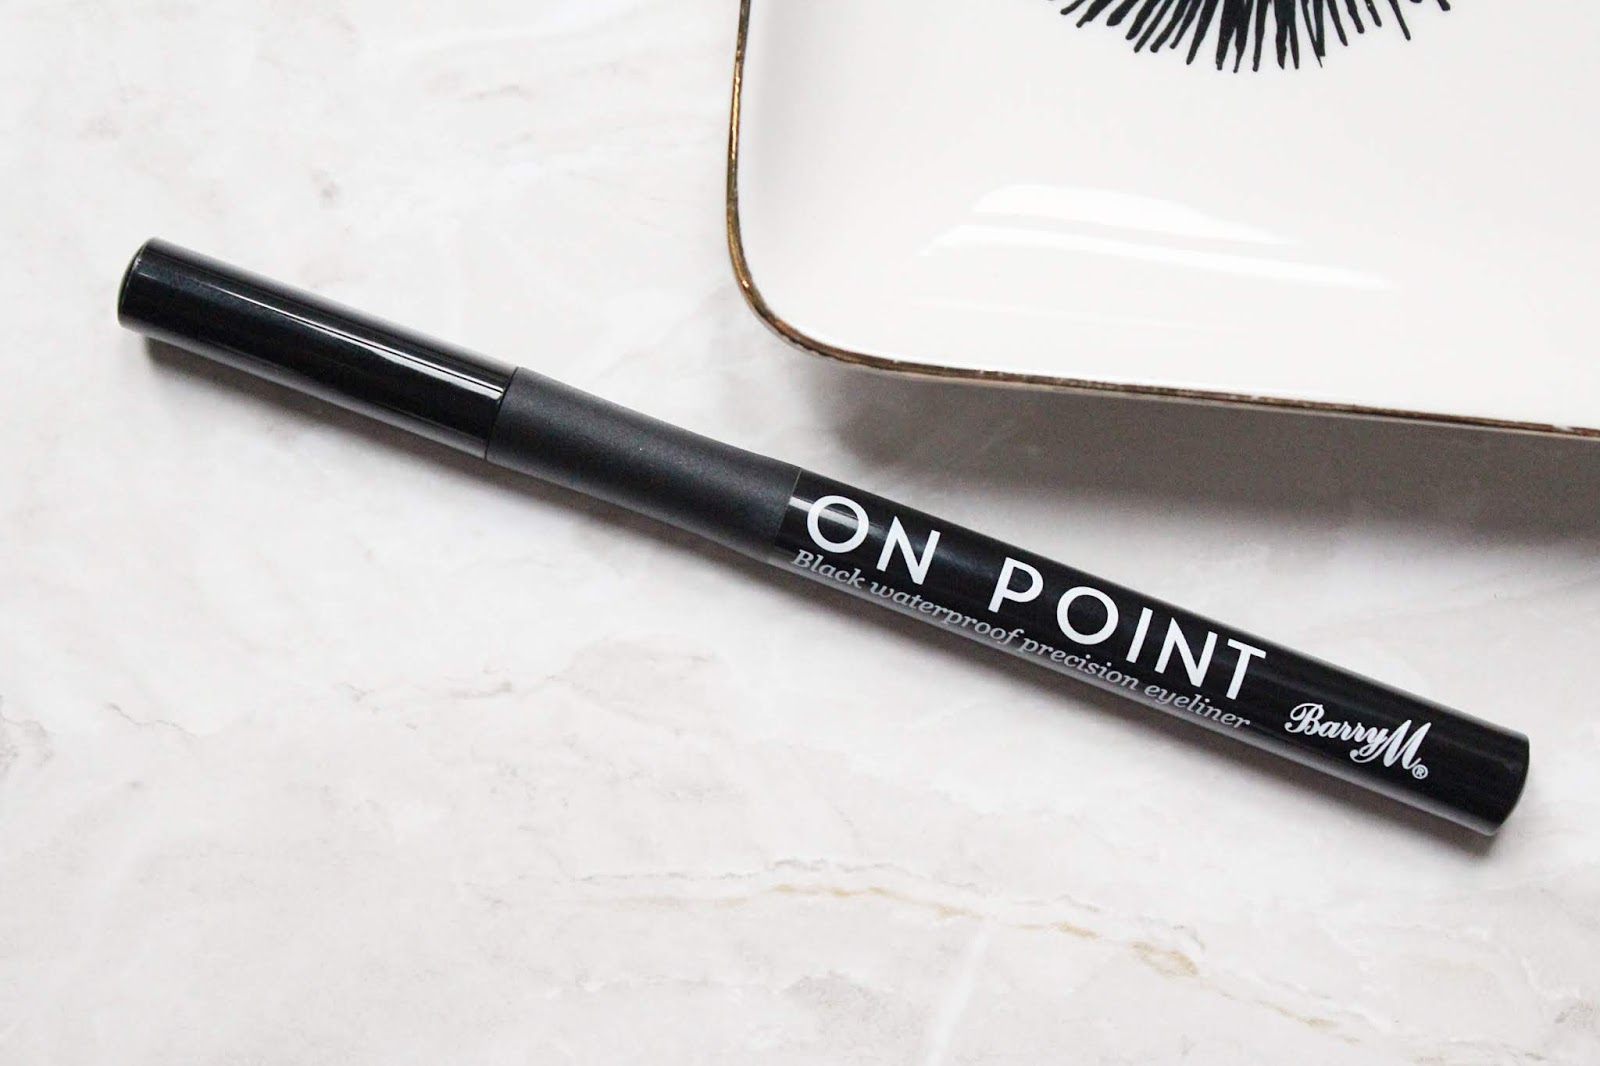 Barry M On Point Precision Eyeliner Review